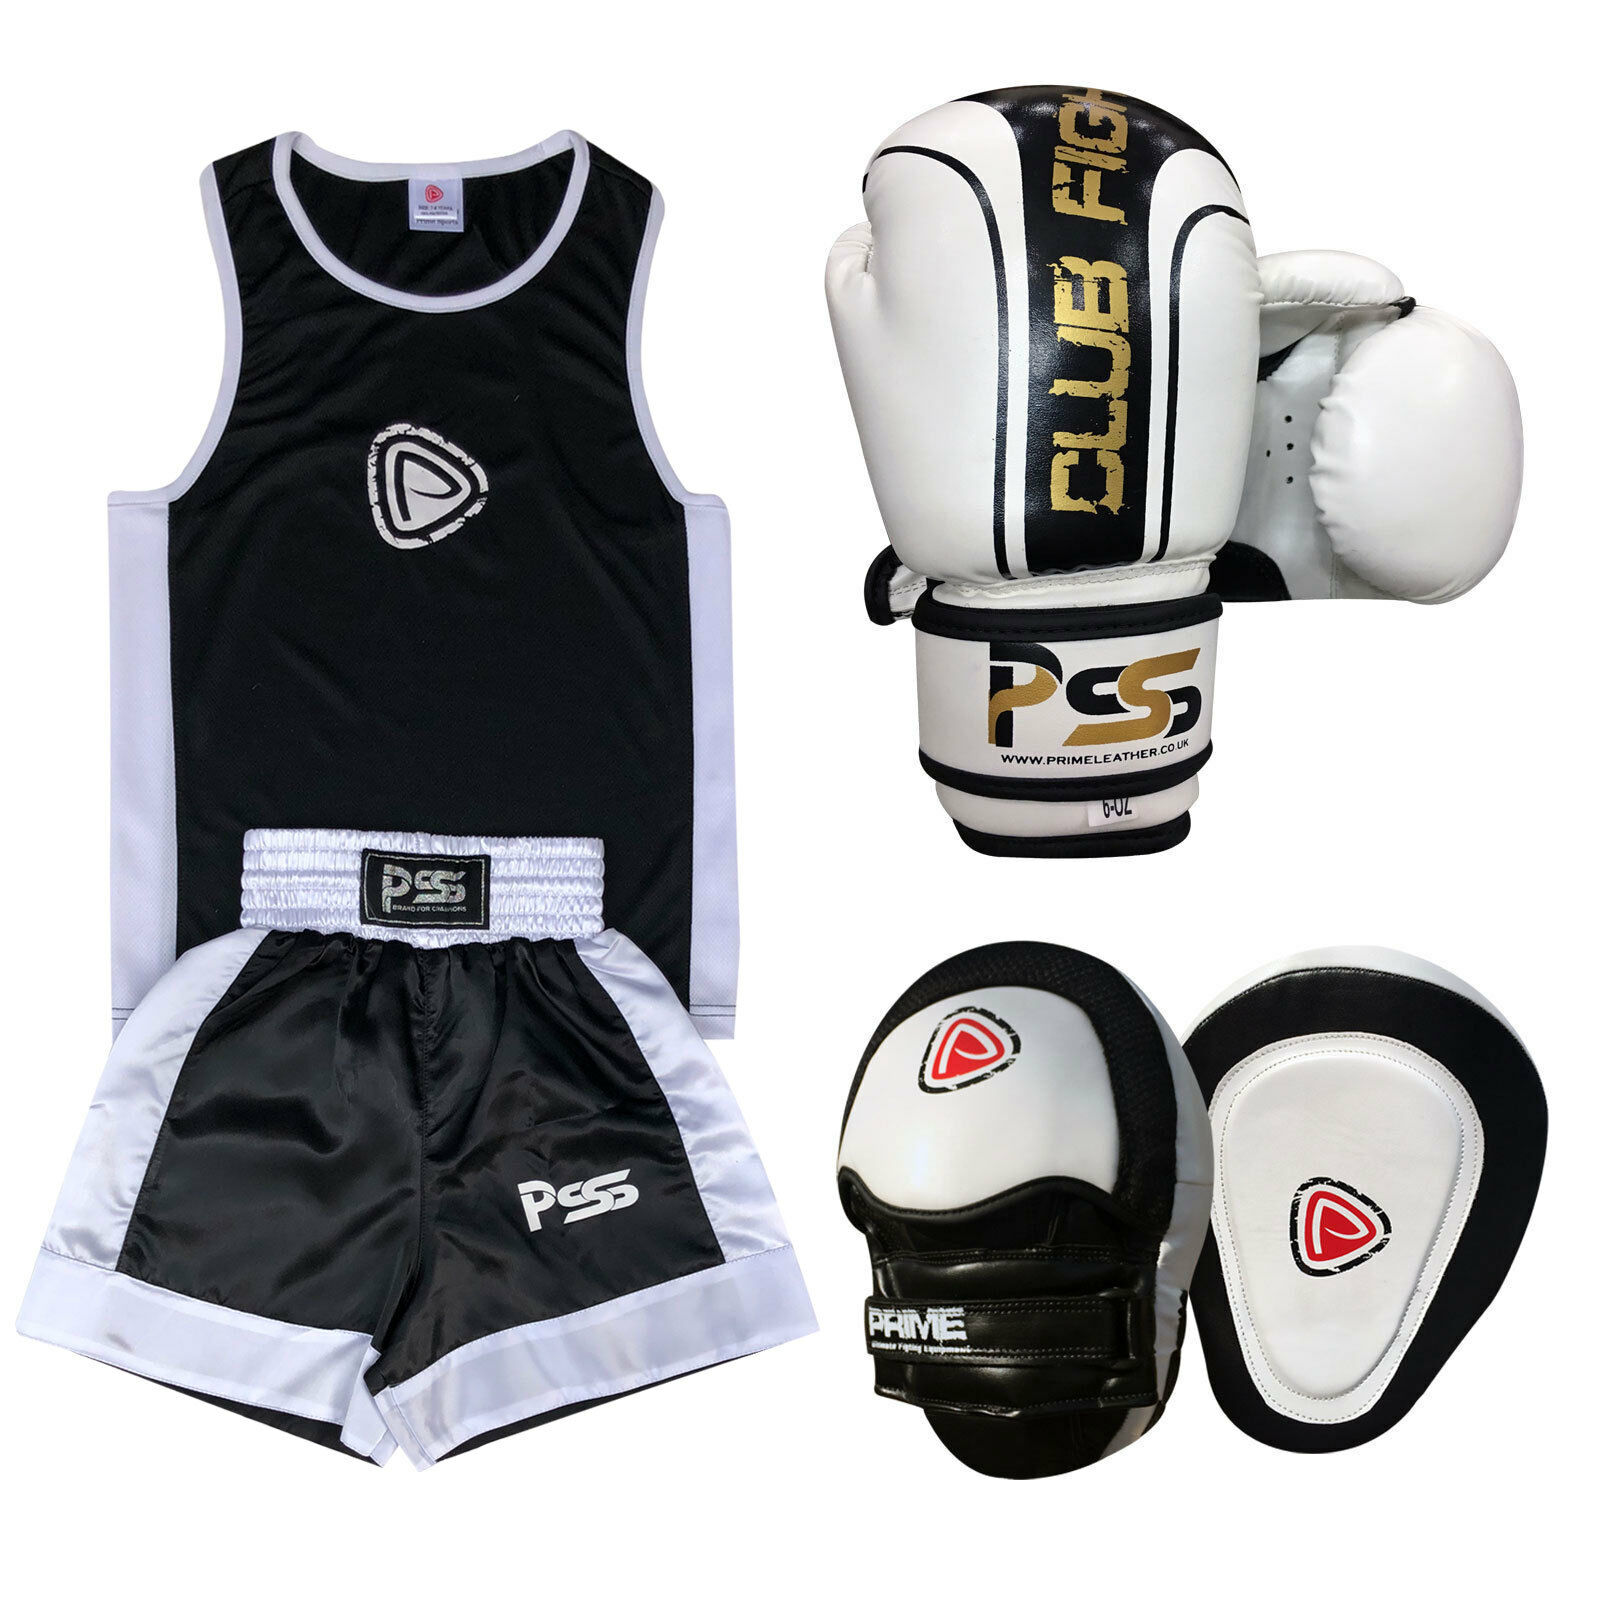 Kids Boxing Uniform Set Pads 3 PCS Uniform Boxing Gloves 1006 Focus Pads Set 1102 Set-19 b6743e